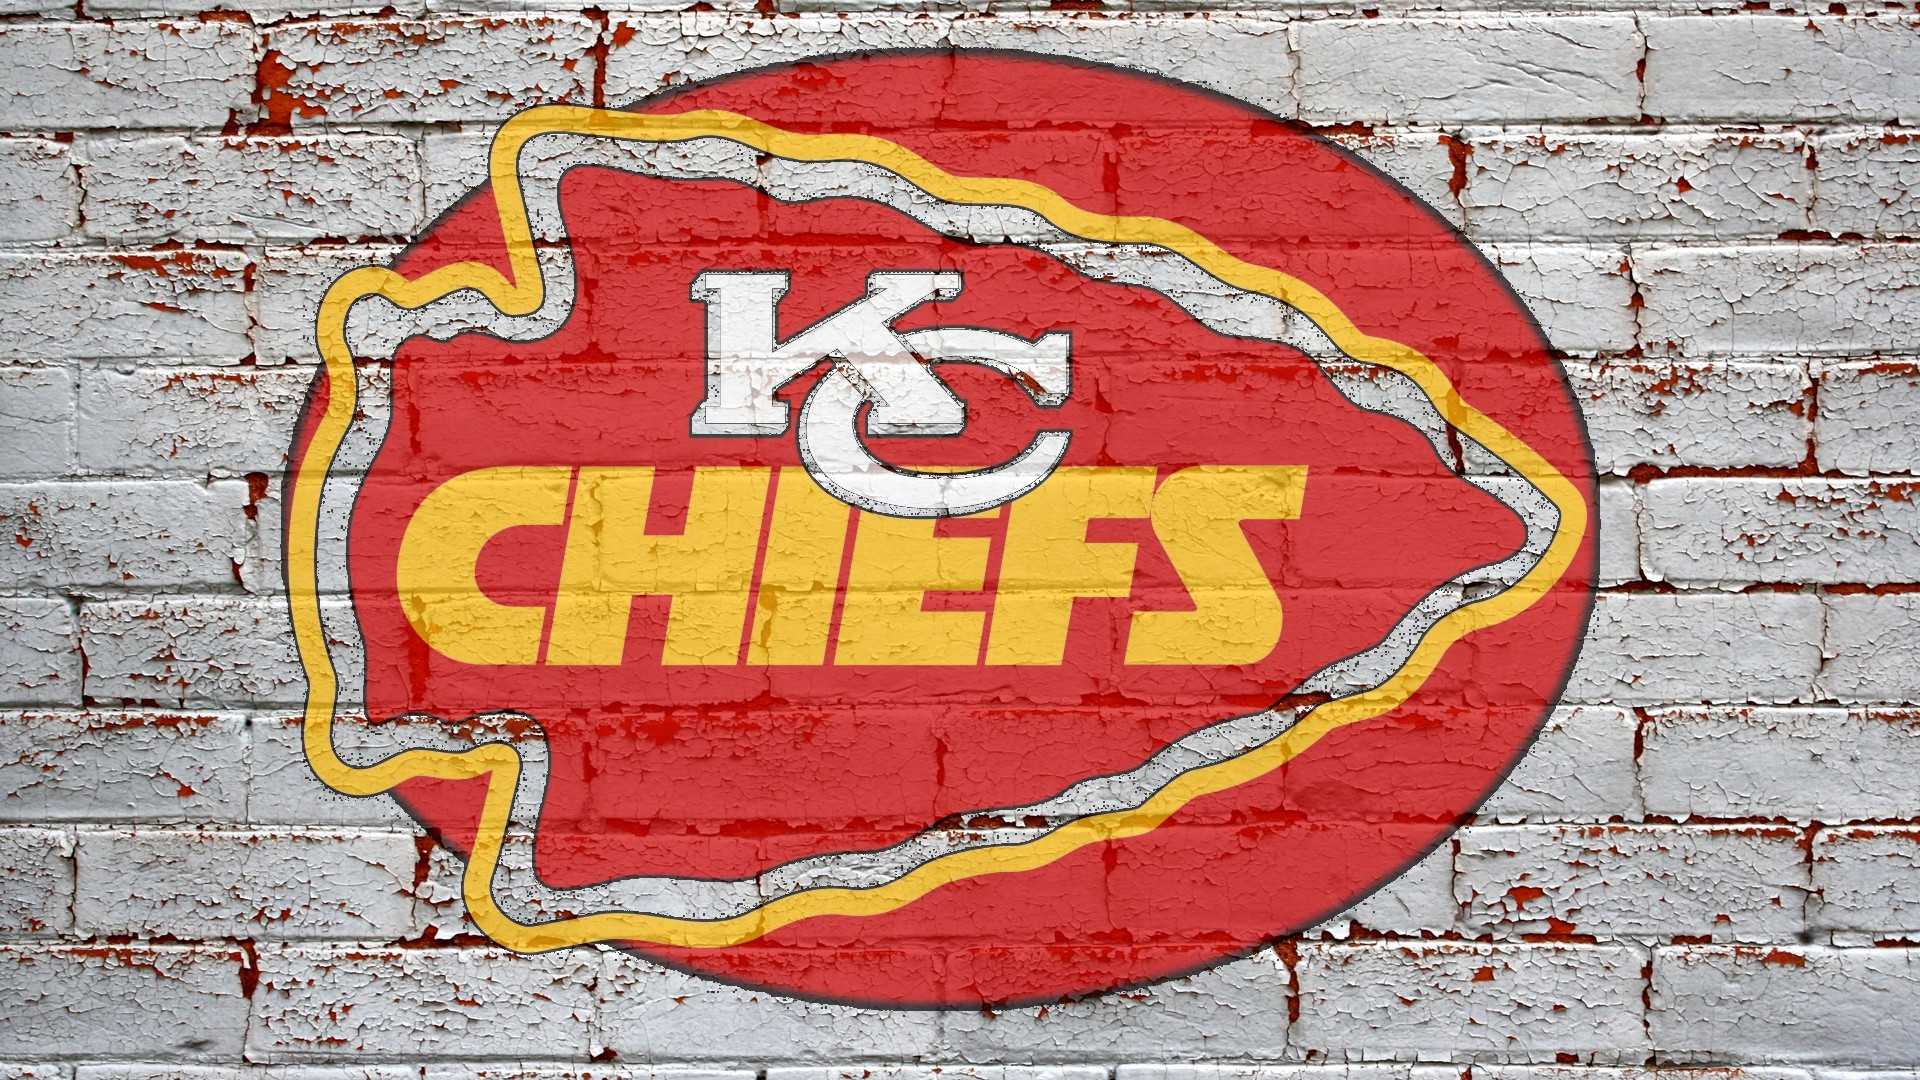 2017 Kansas City Chiefs Wallpapers - PC |iPhone| Android